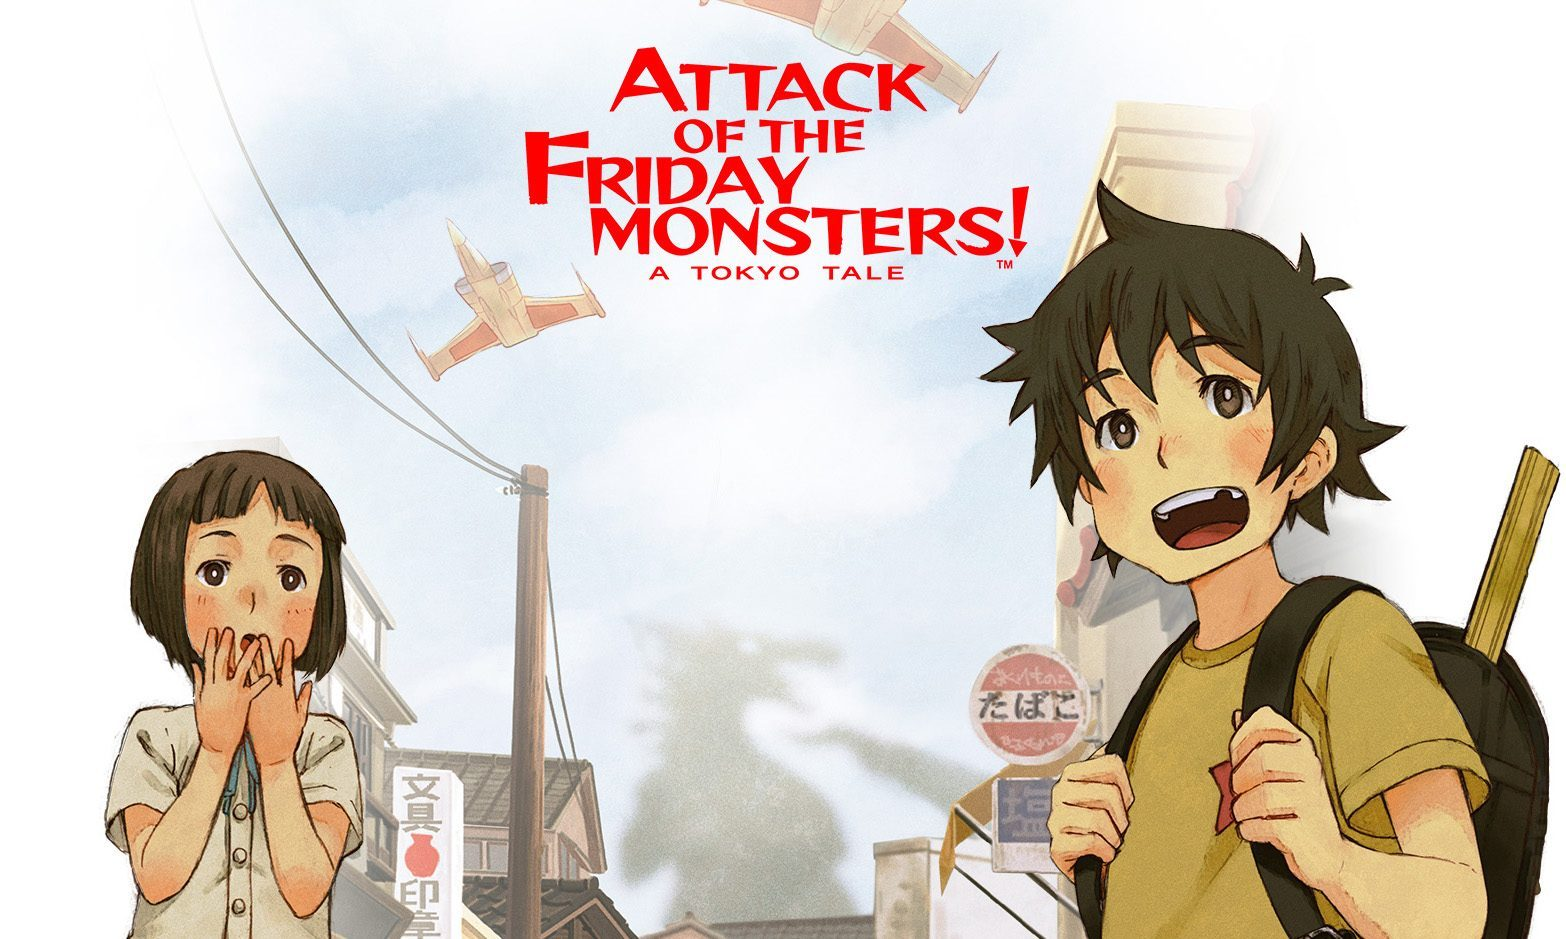 attack-of-the-friday-monsters-a-tokyo-tale-1736792-2233746